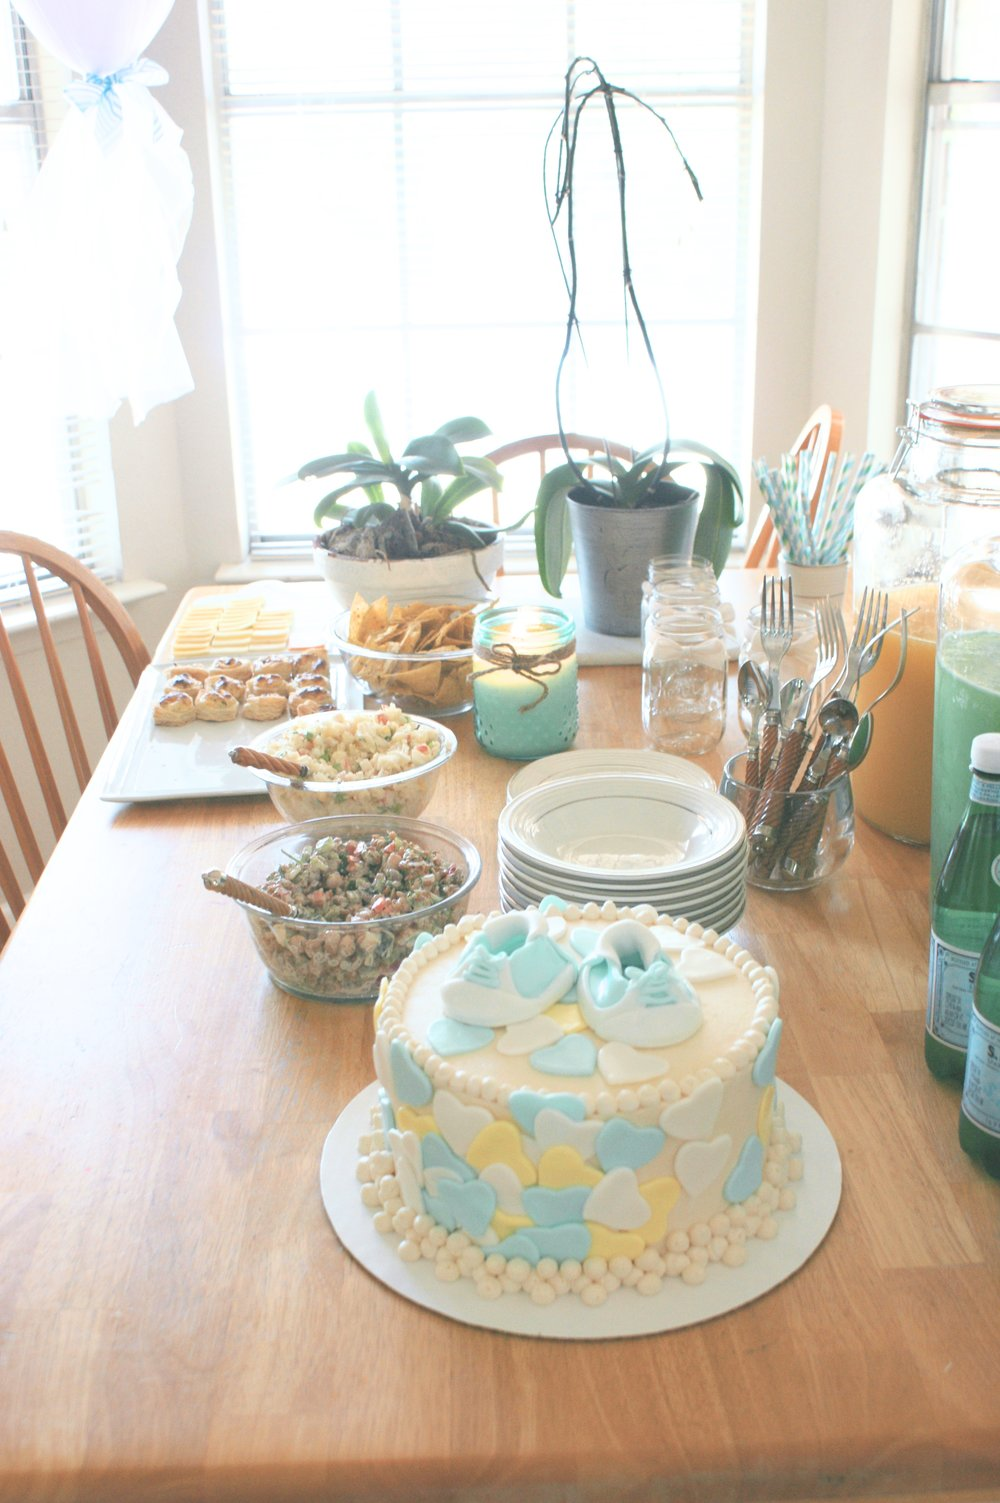 Baby shower food and drinks